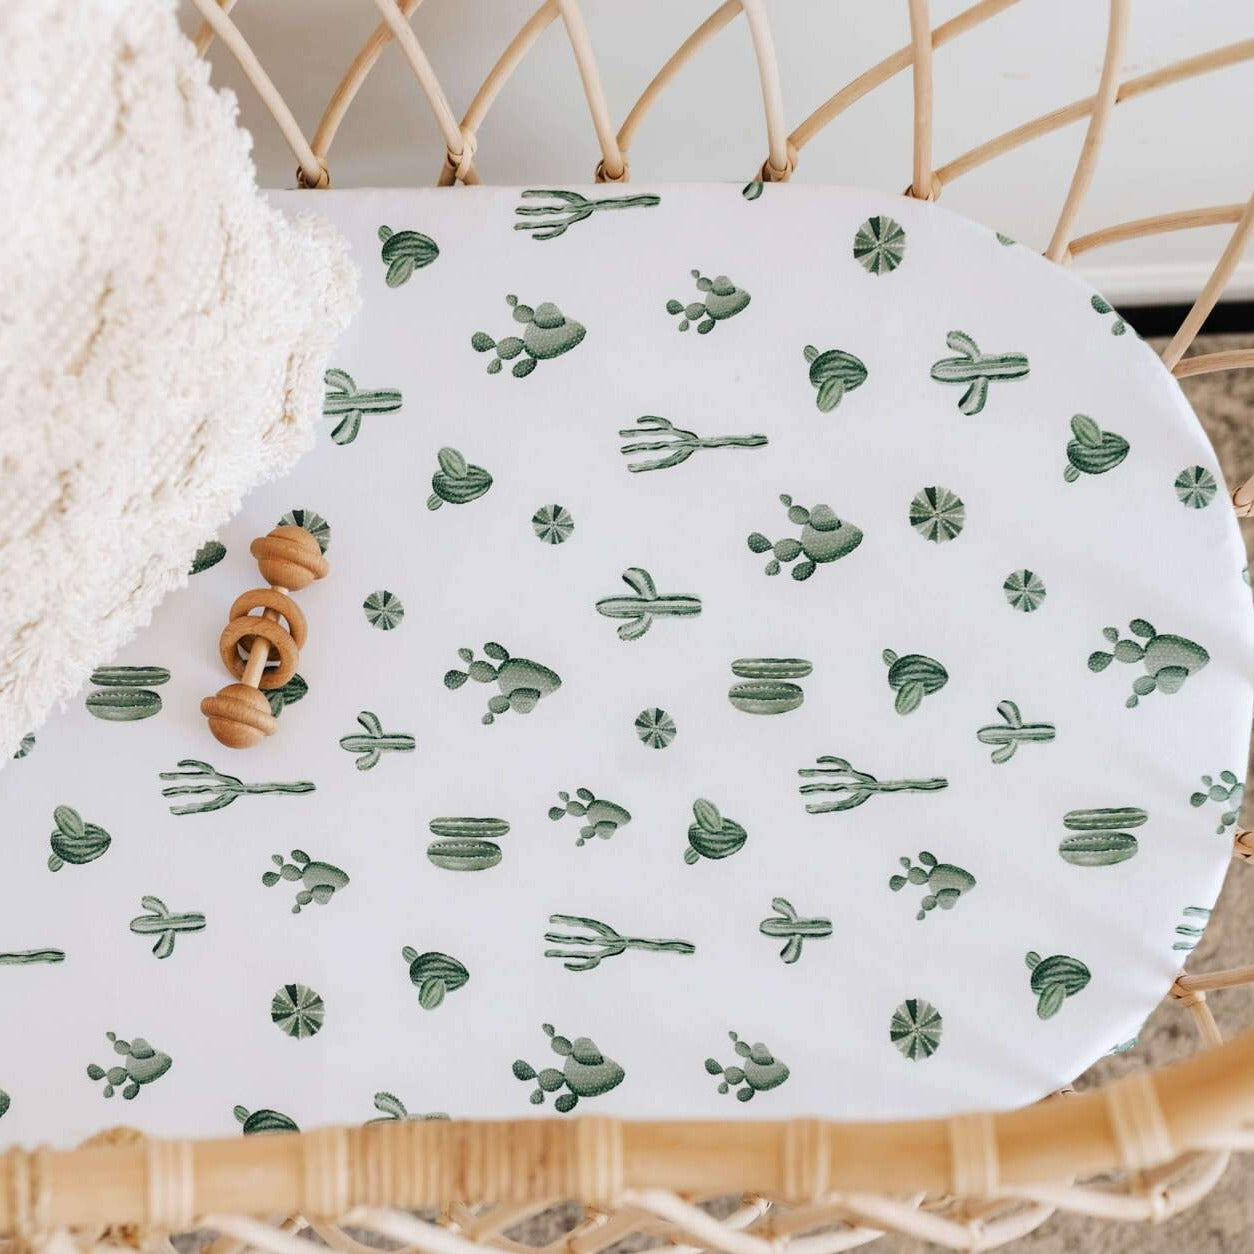 Bassinet Sheet / Change Pad Cover - Cactus-Bassinet Sheets-Snuggle Hunny Kids-Little Soldiers